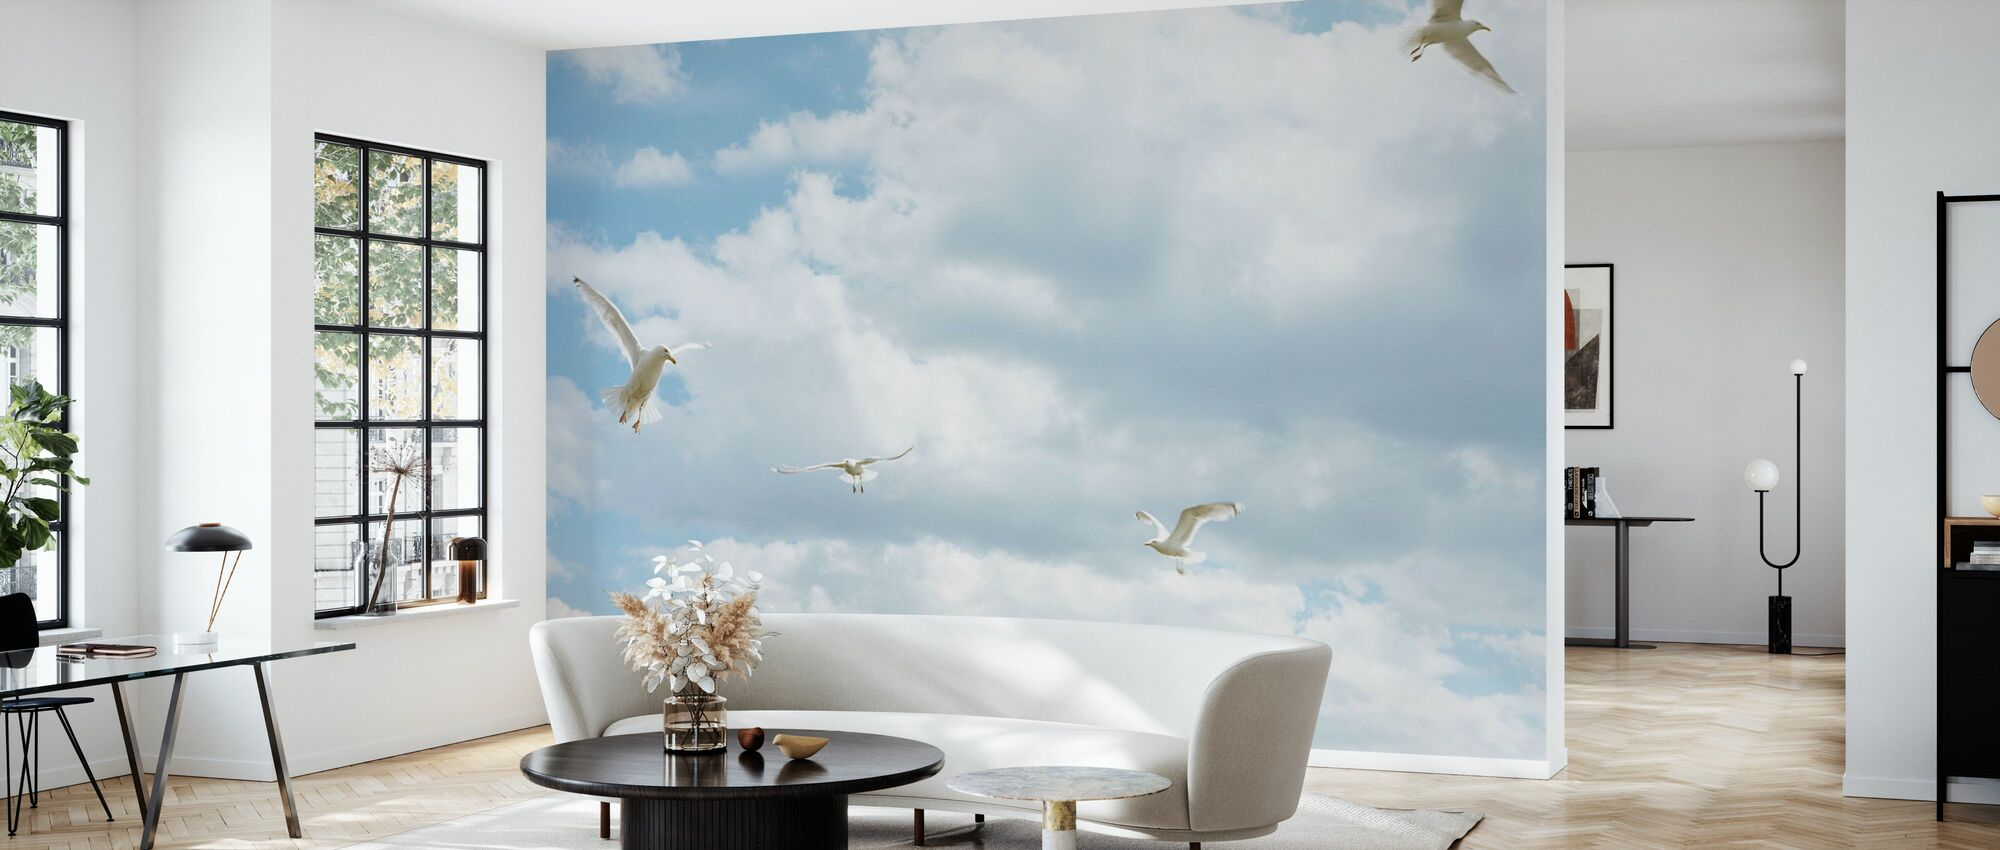 Seagull in the Sky - Wallpaper - Living Room